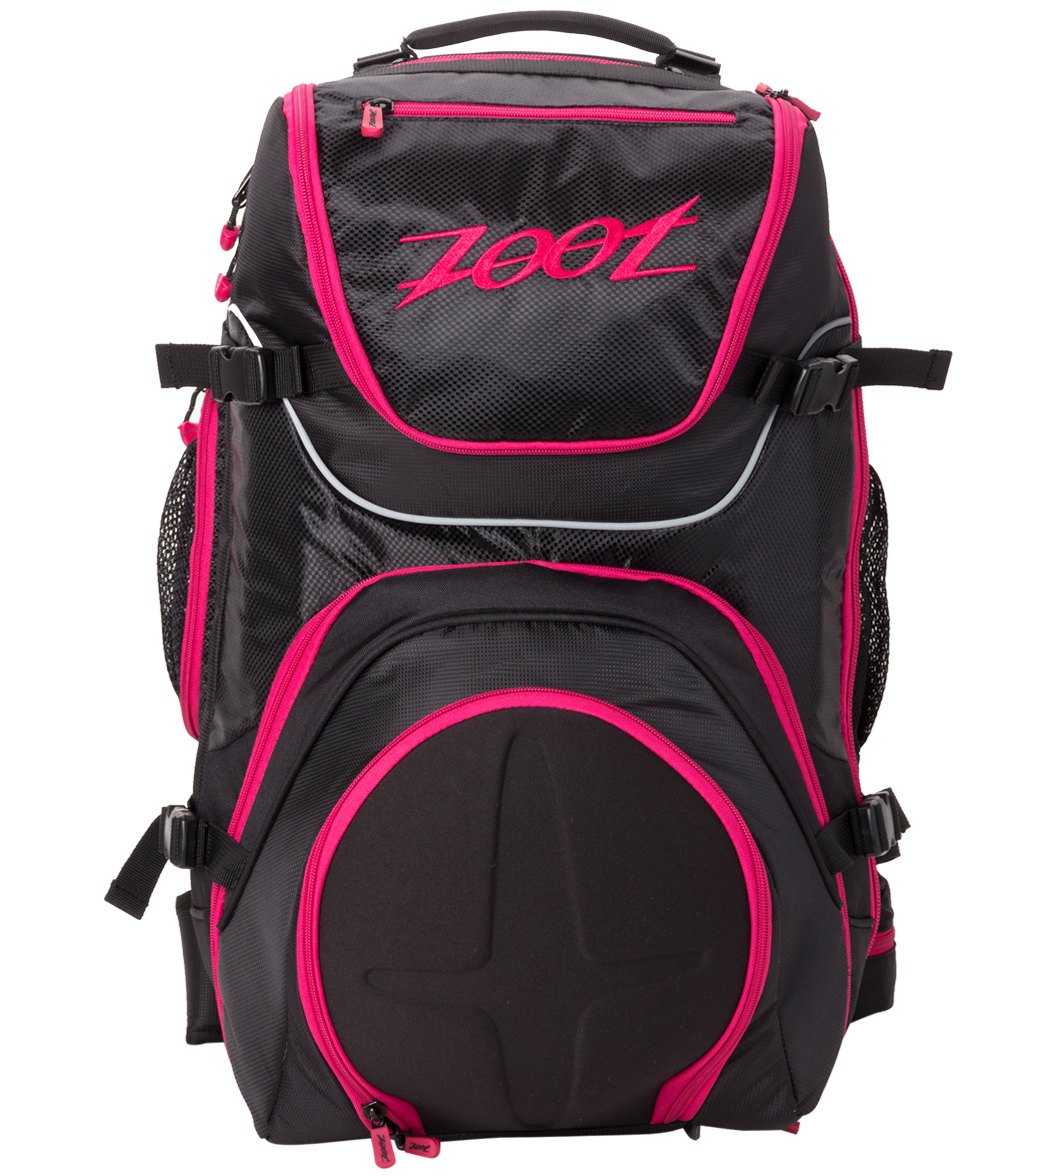 Zoot Ultra Tri Bag 2 0 At Swimoutlet Free Shipping